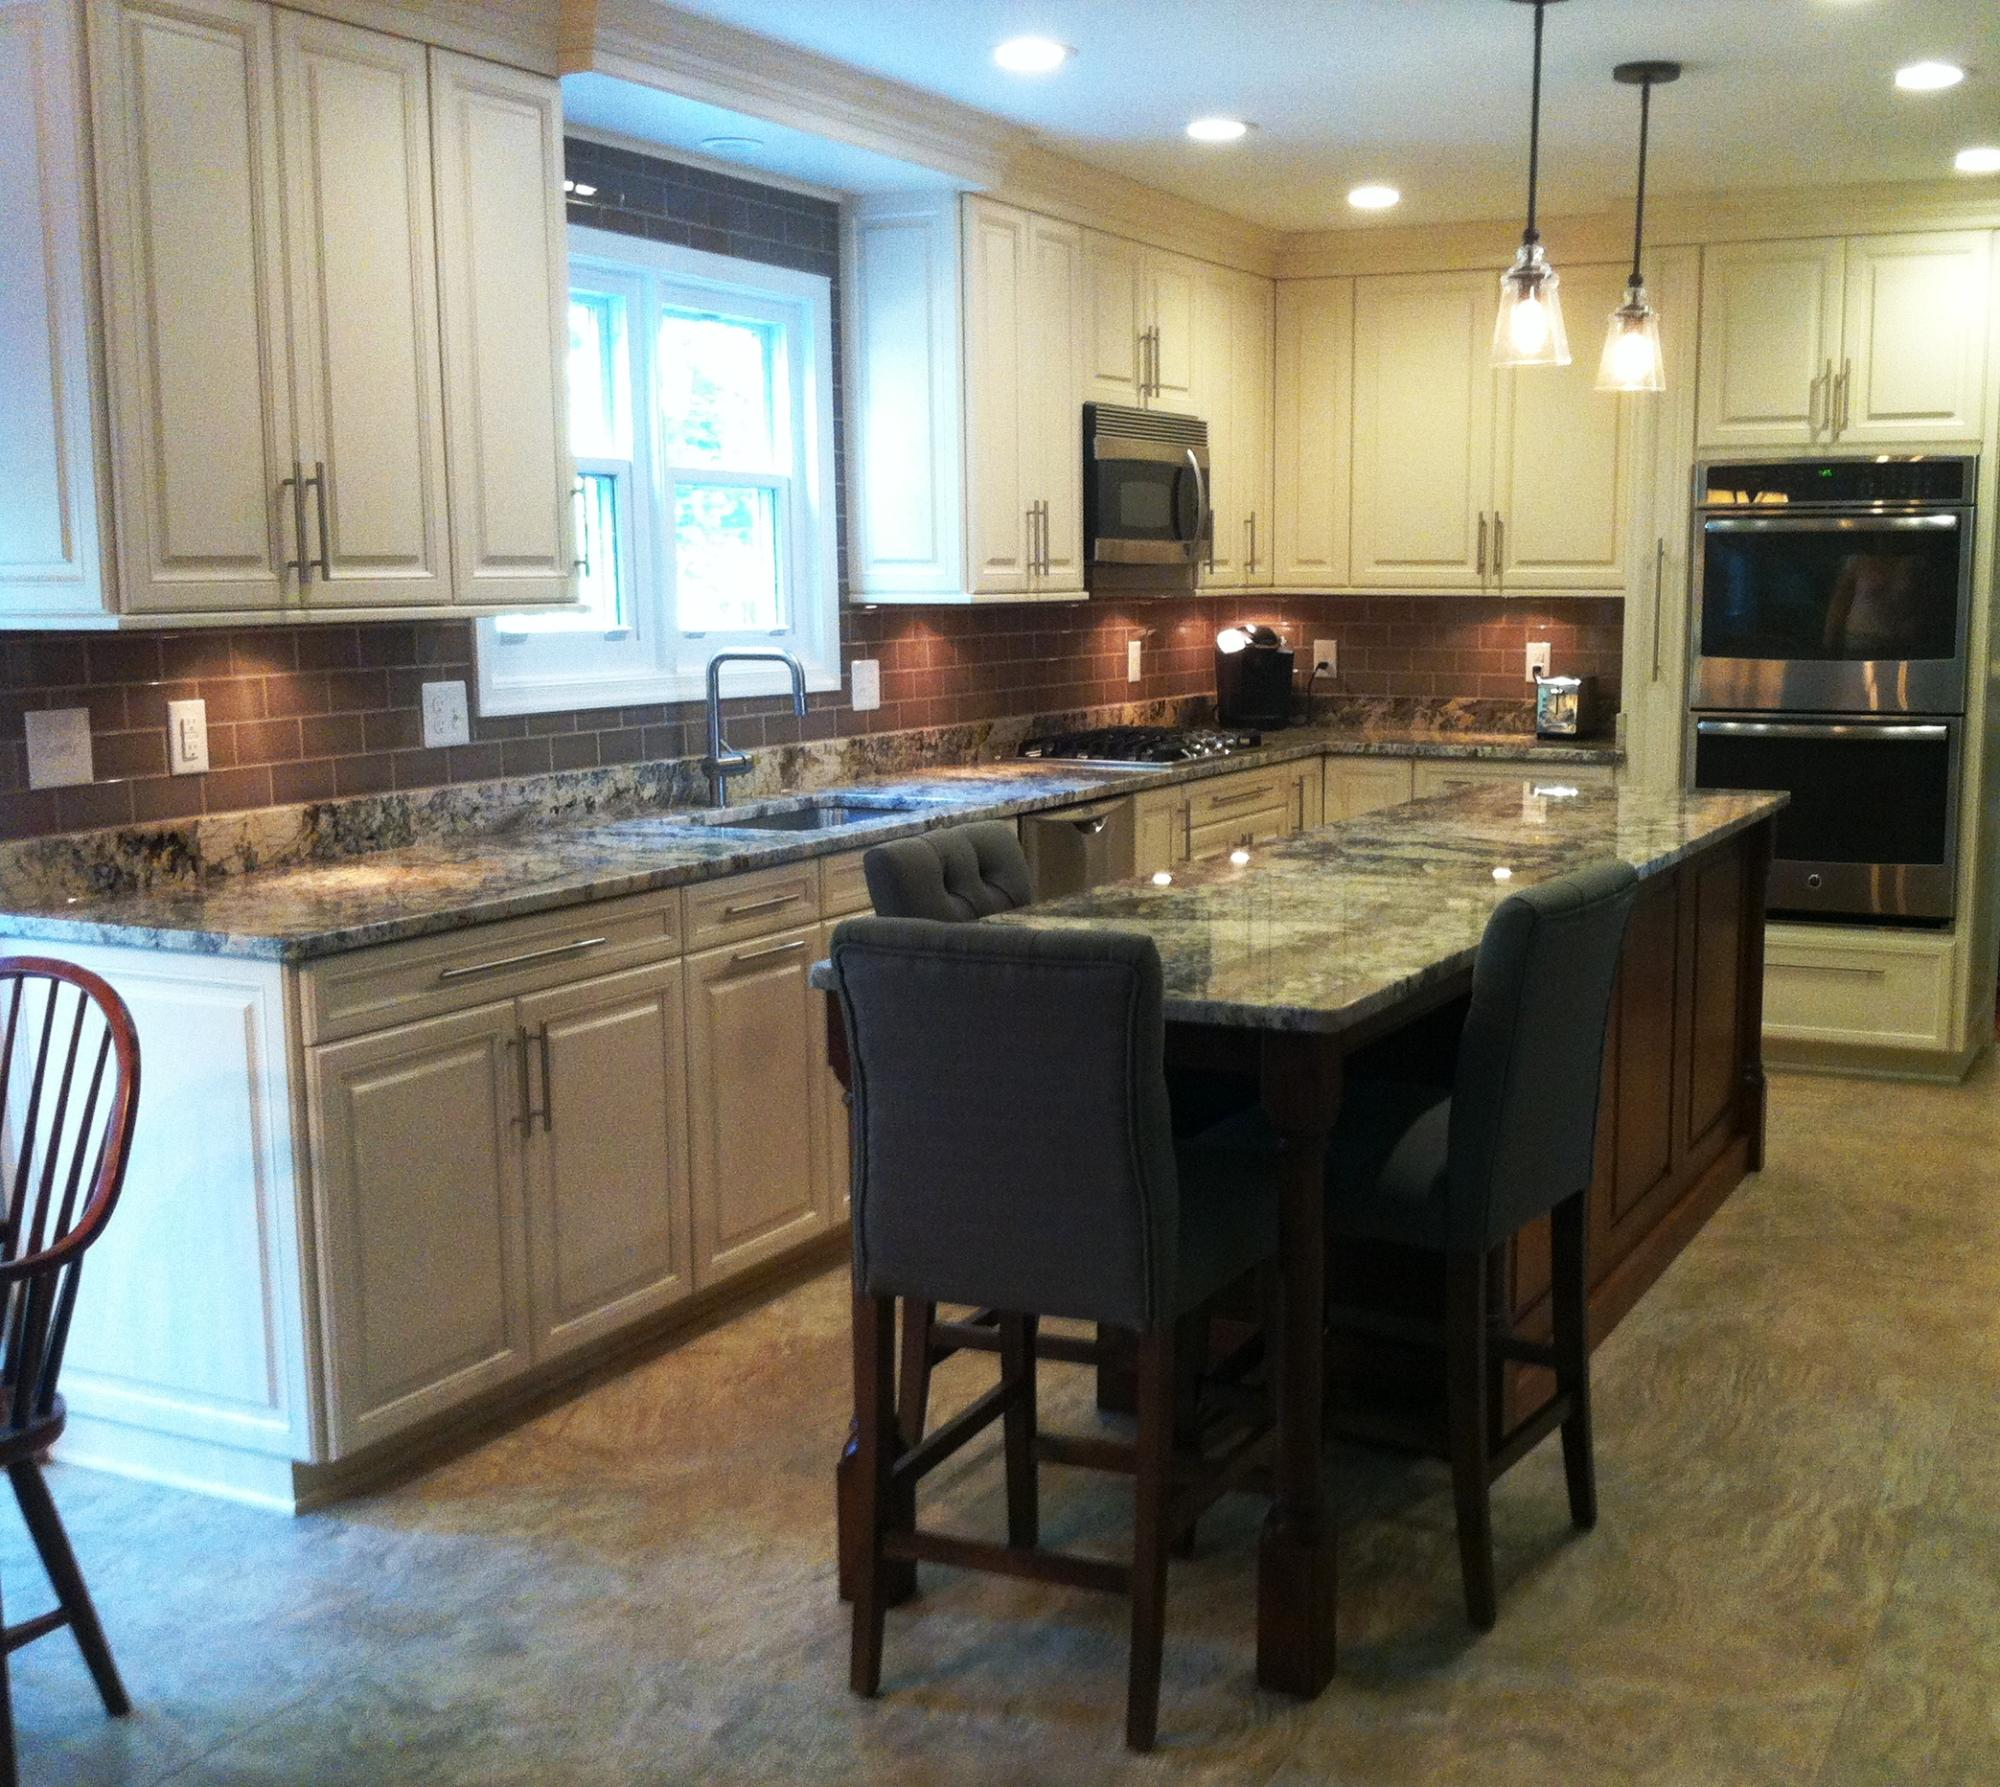 kitchens amp baths kitchen remodeling kitchen design services 2014 08 31 16 27 36a jpg